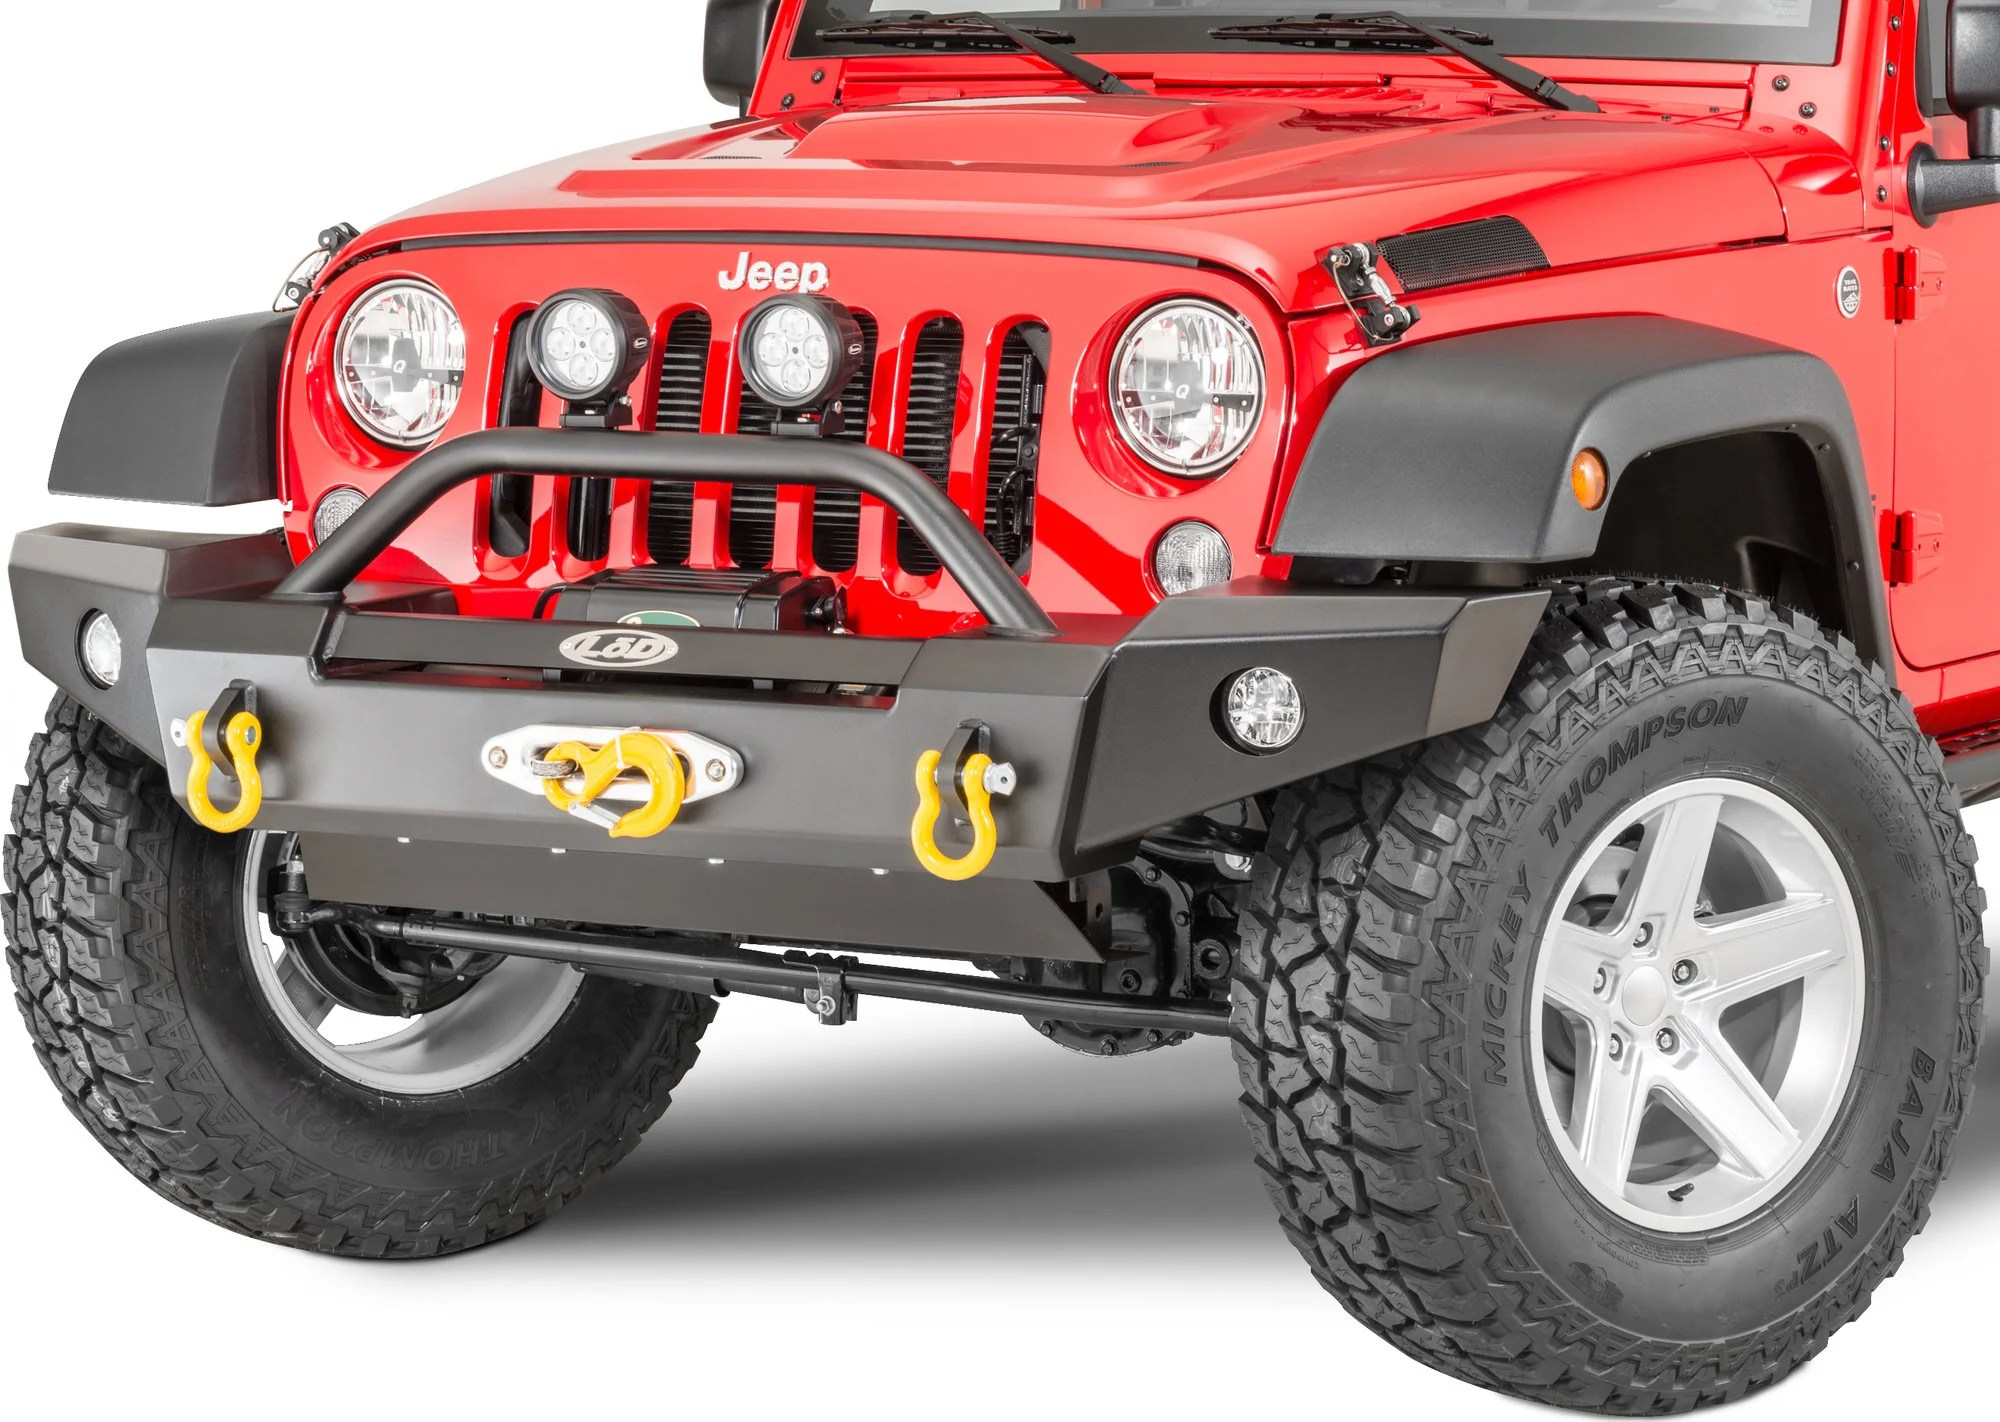 hight resolution of lod offroad signature series full width front winch bumper with bull bar for 07 18 jeep wrangler jk for warn zeon winch quadratec